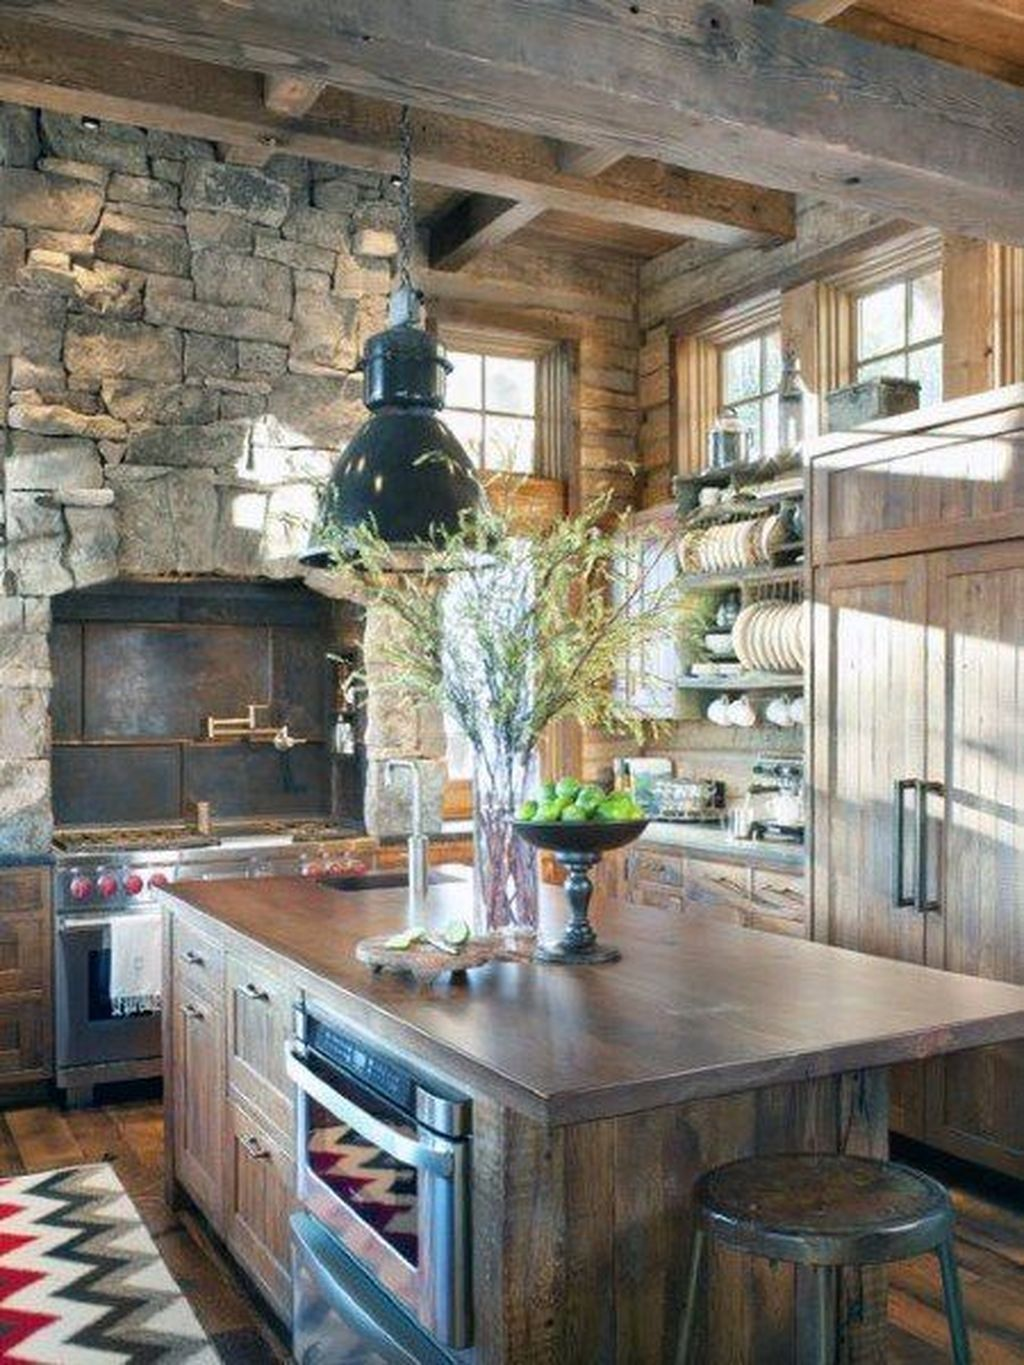 40 Warm Cozy Rustic Kitchen Designs For Your Cabin Kitchen Design Kitchen Interior Rustic Kitchen Decor